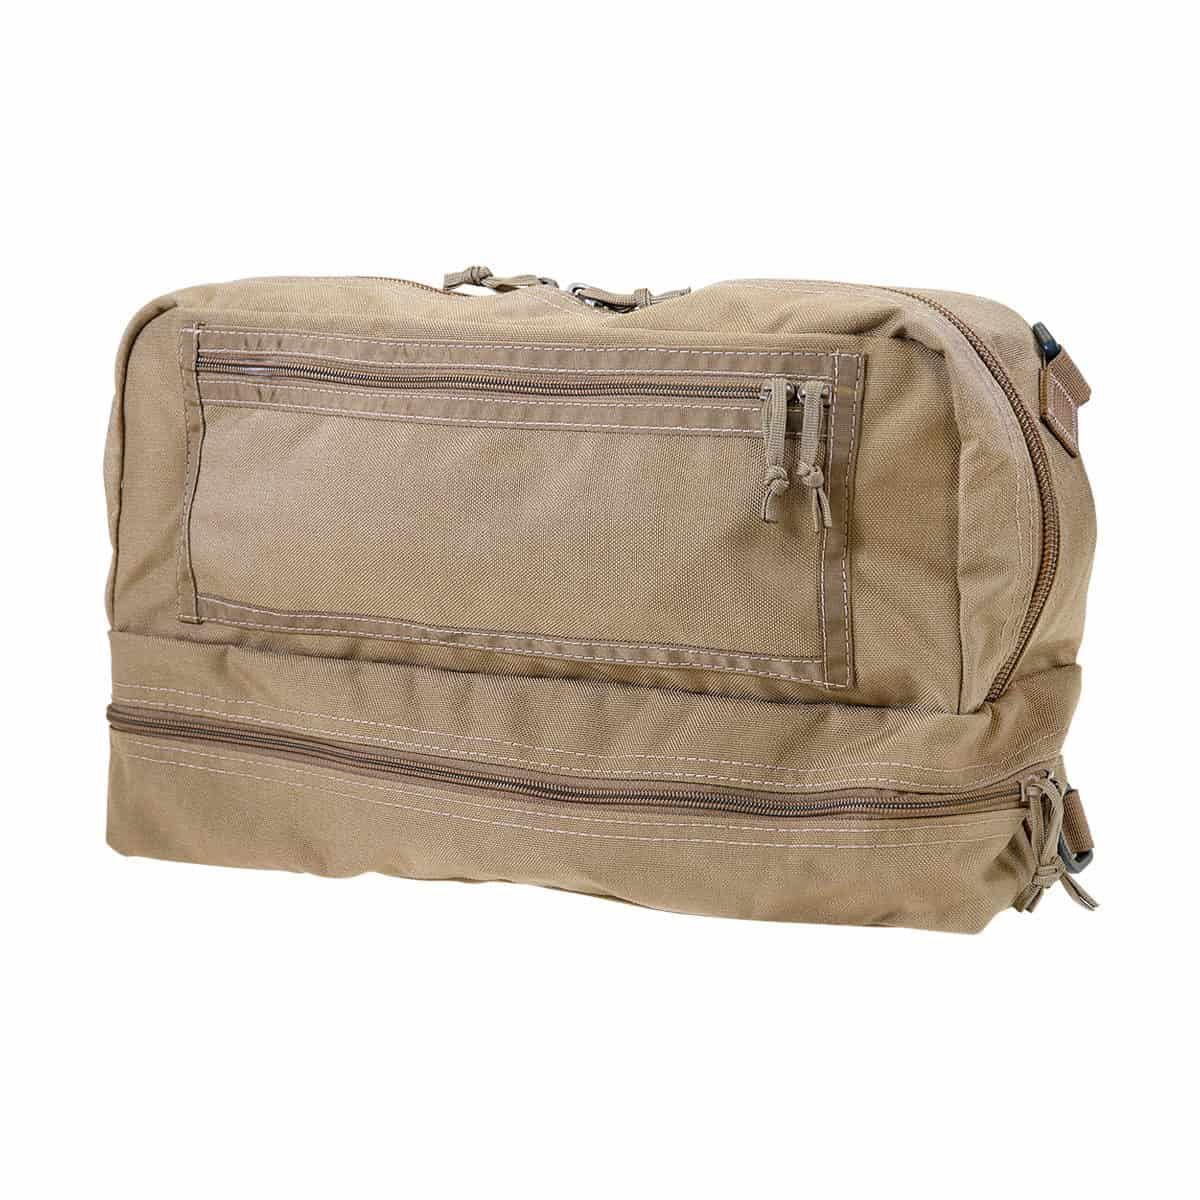 mojo combat life saver bag closed front left coyote brown